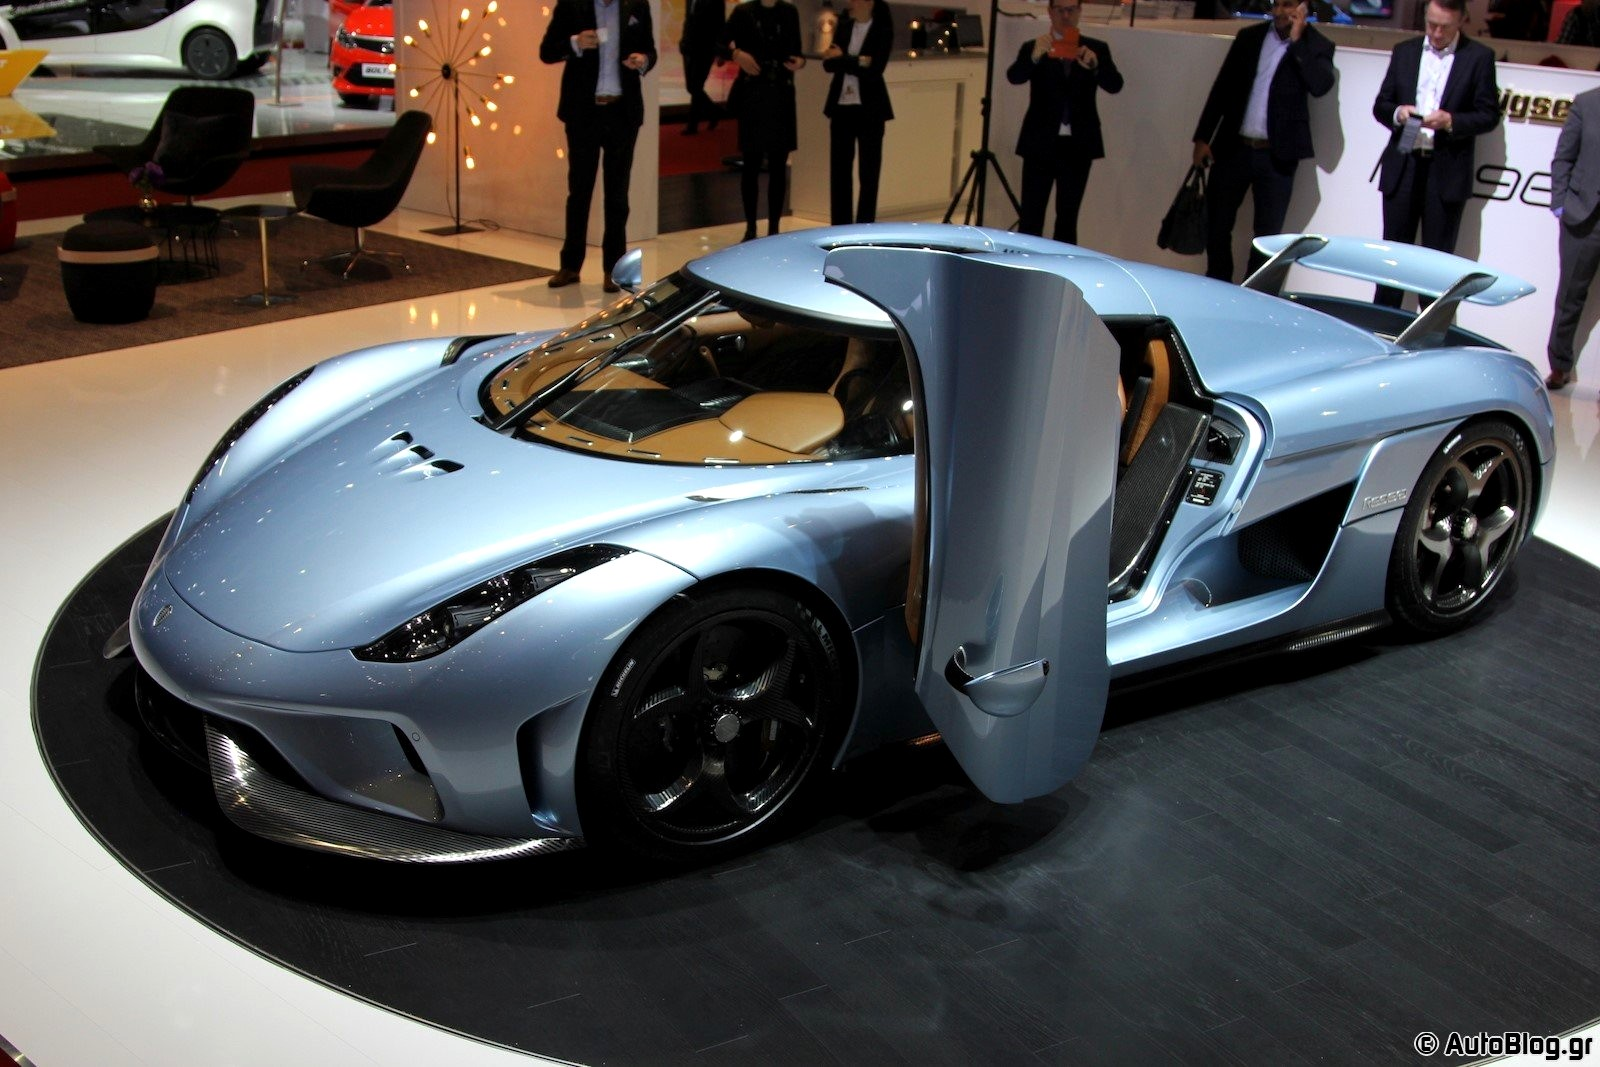 Our list of exotic cars includes the Koenigsegg regera